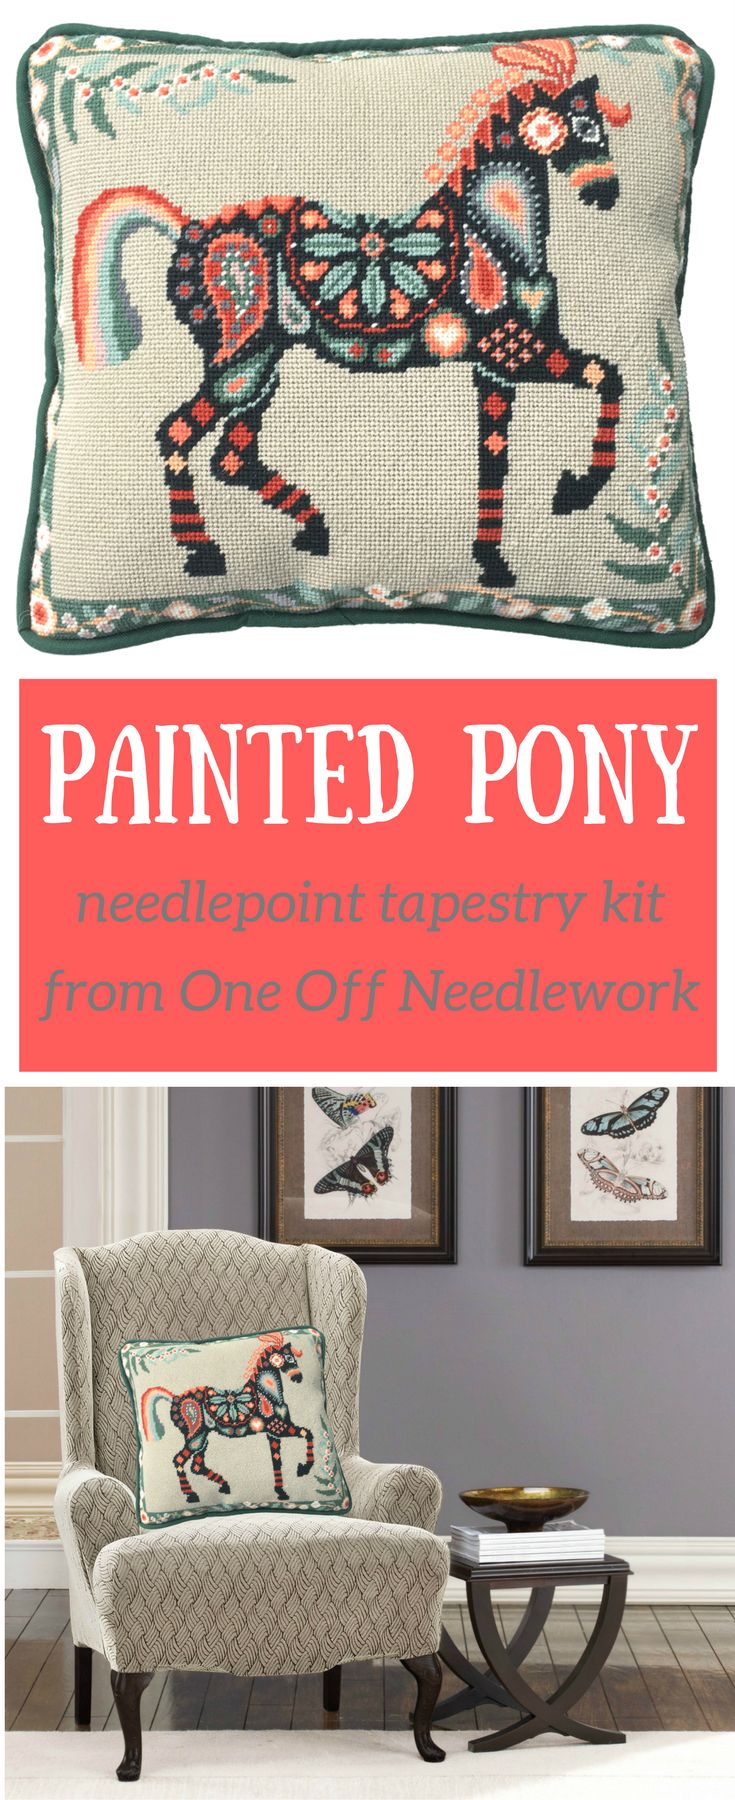 New needlepoint tapestry kit from One Off Needlework. A perfect craft project for a beginner stitcher. Our website has all the support you need.